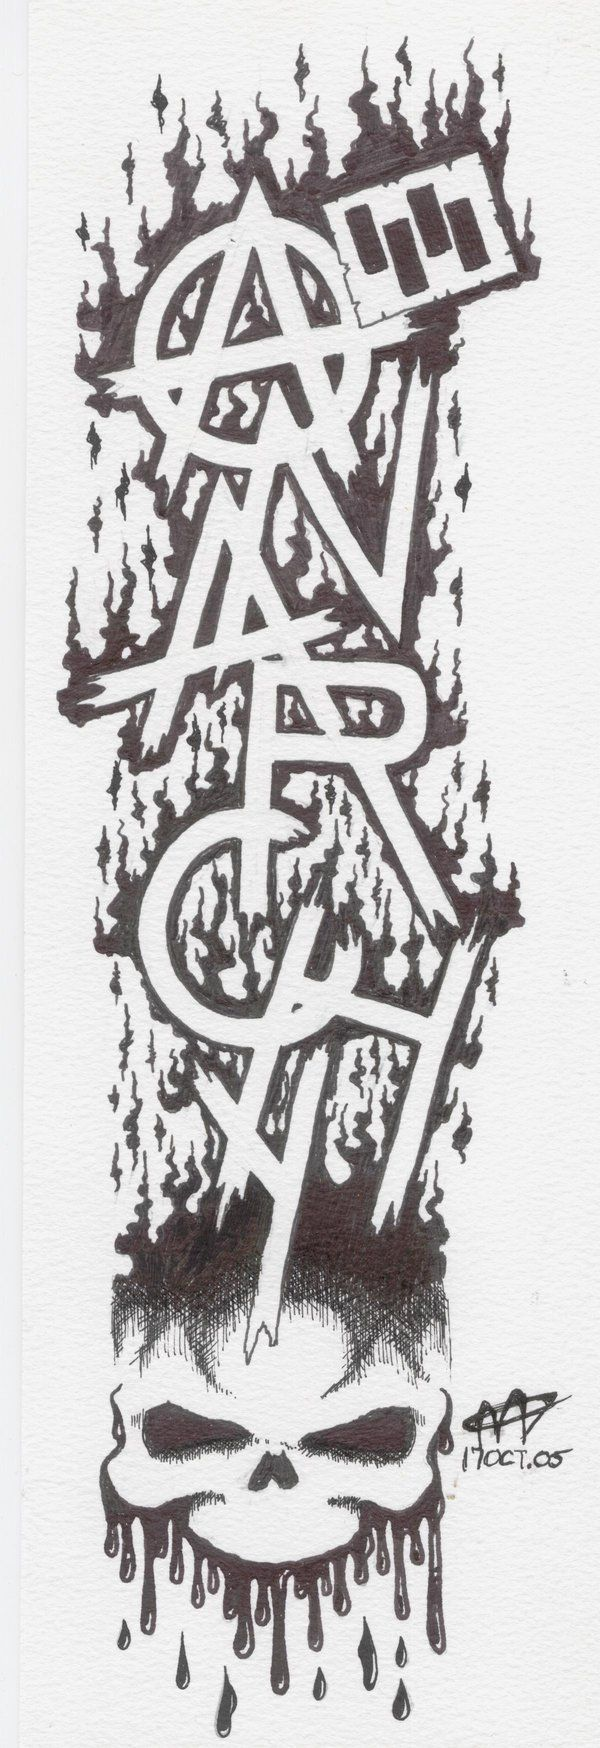 Sons of Anarchy Symbol | Sons Of Anarchy Tattoo Outline Designs